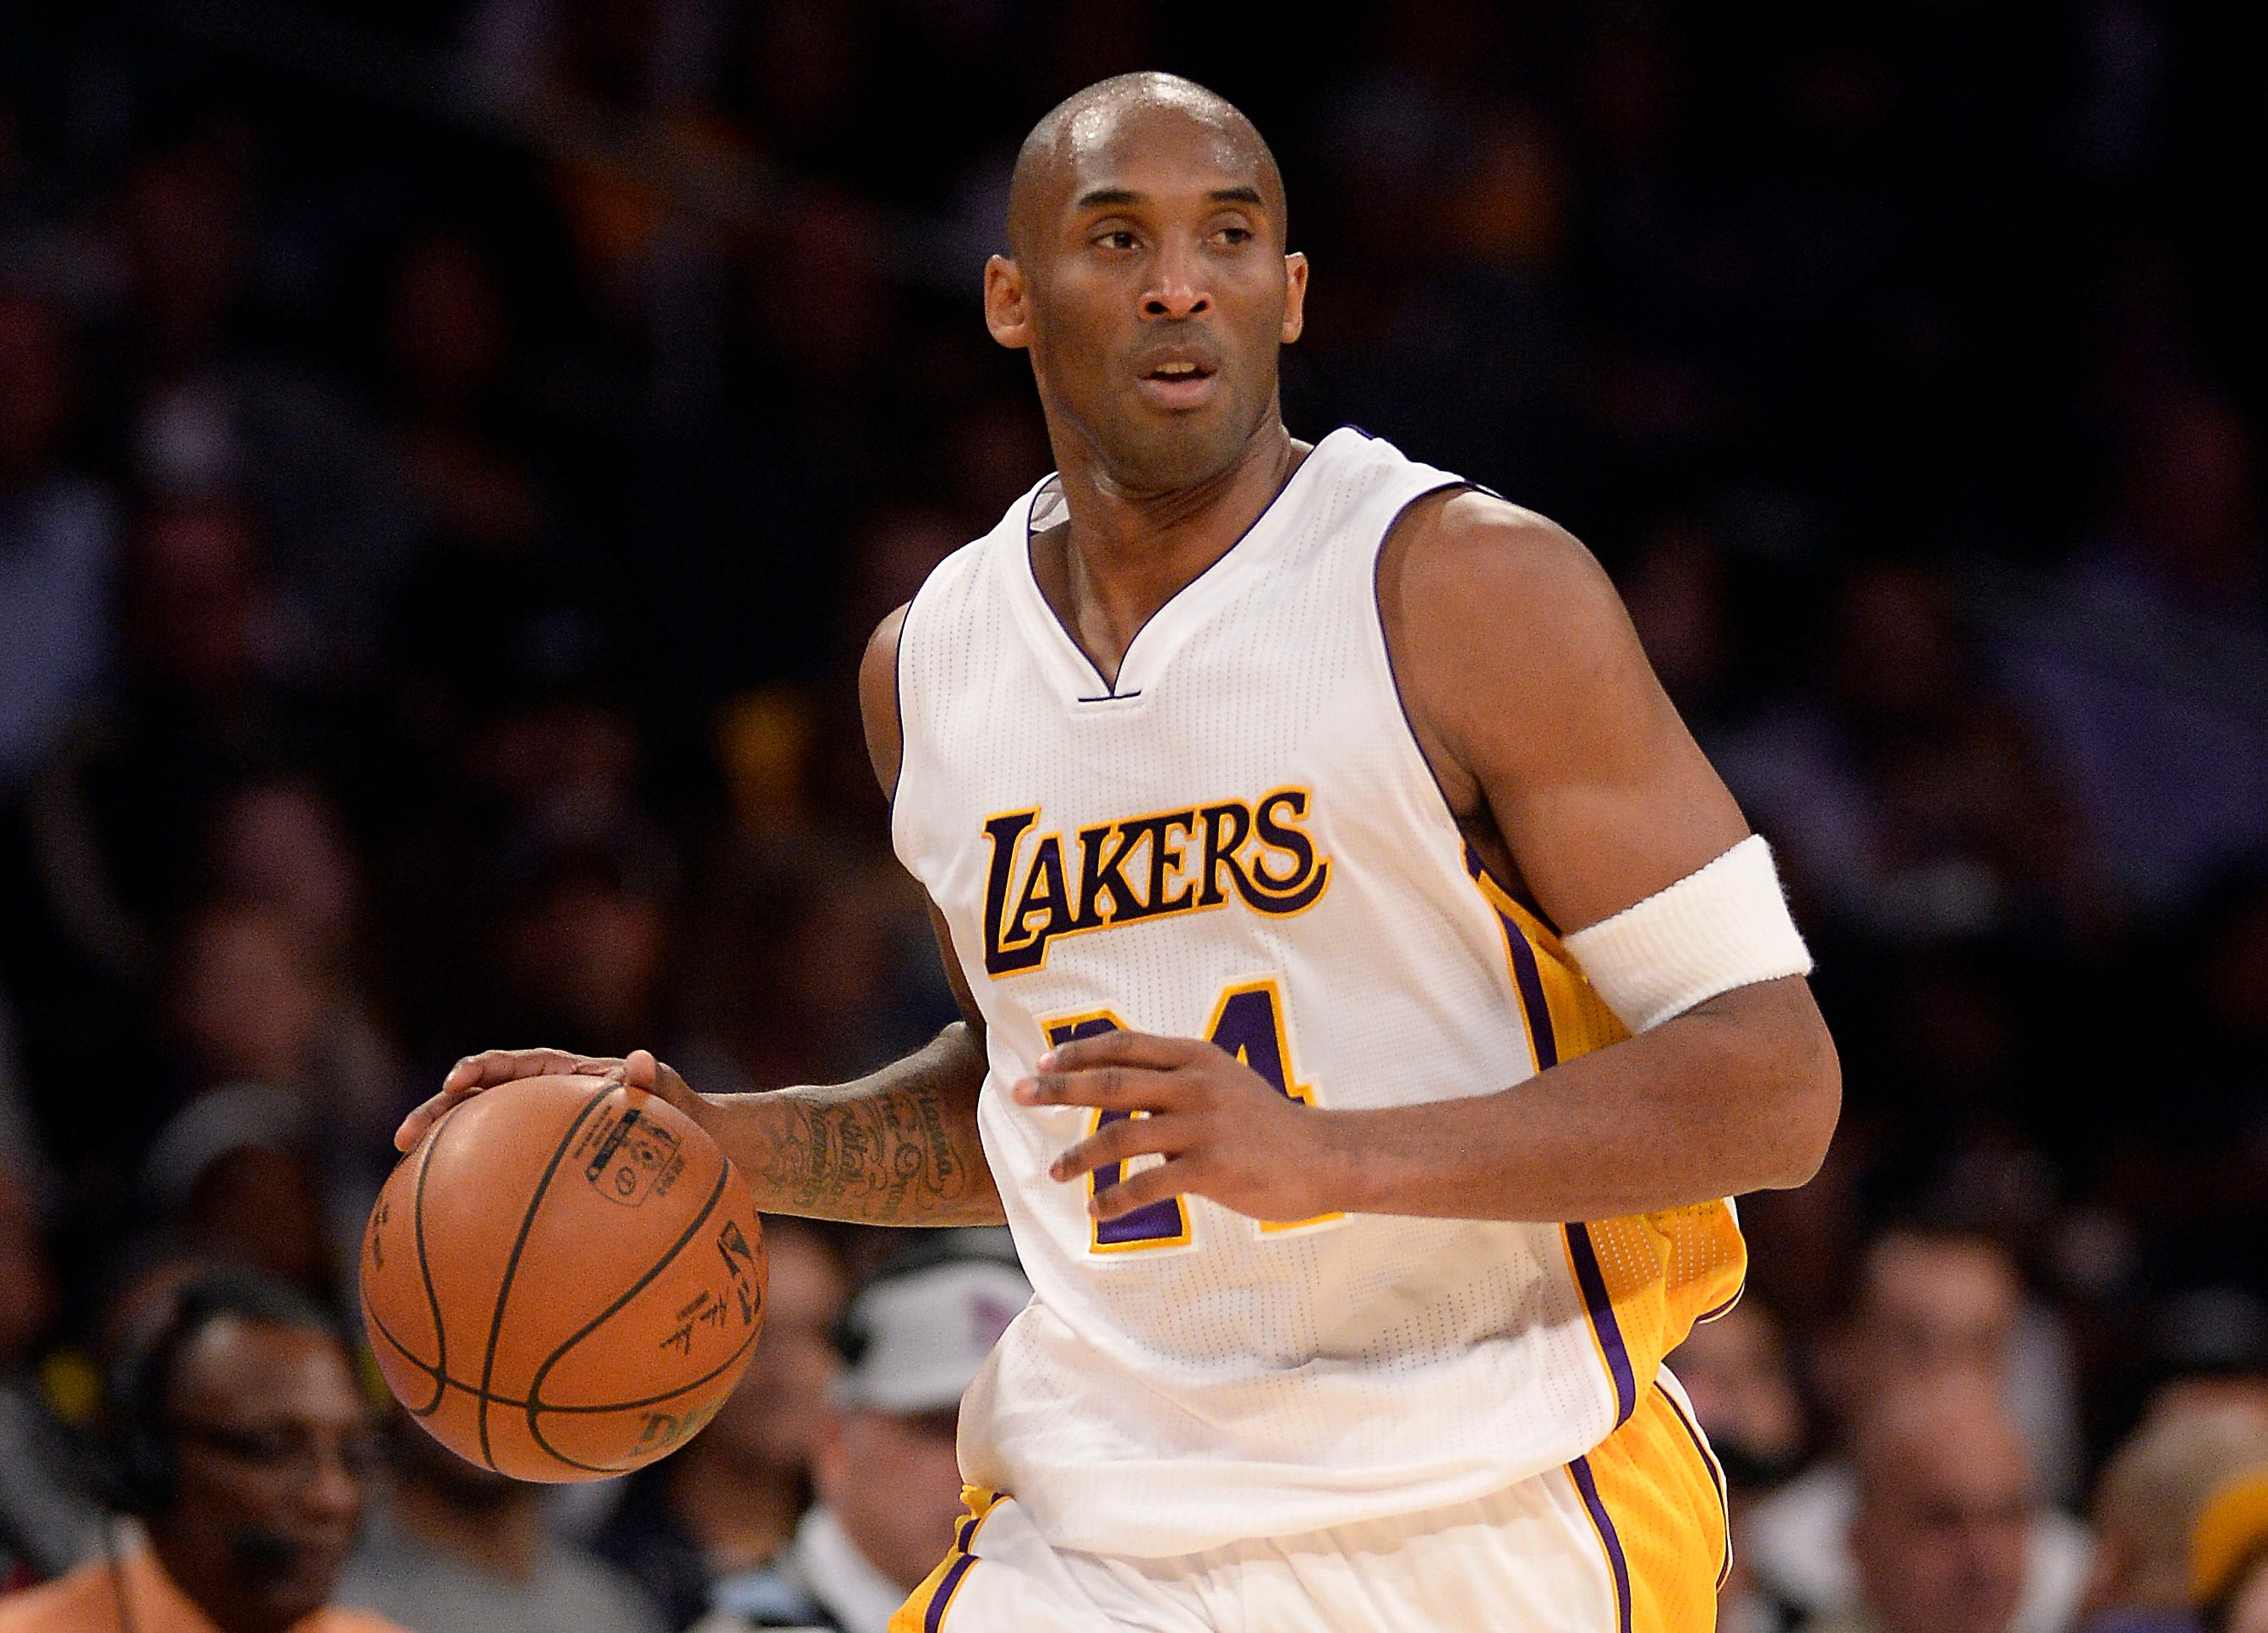 Kobe Bryant, NBA legend